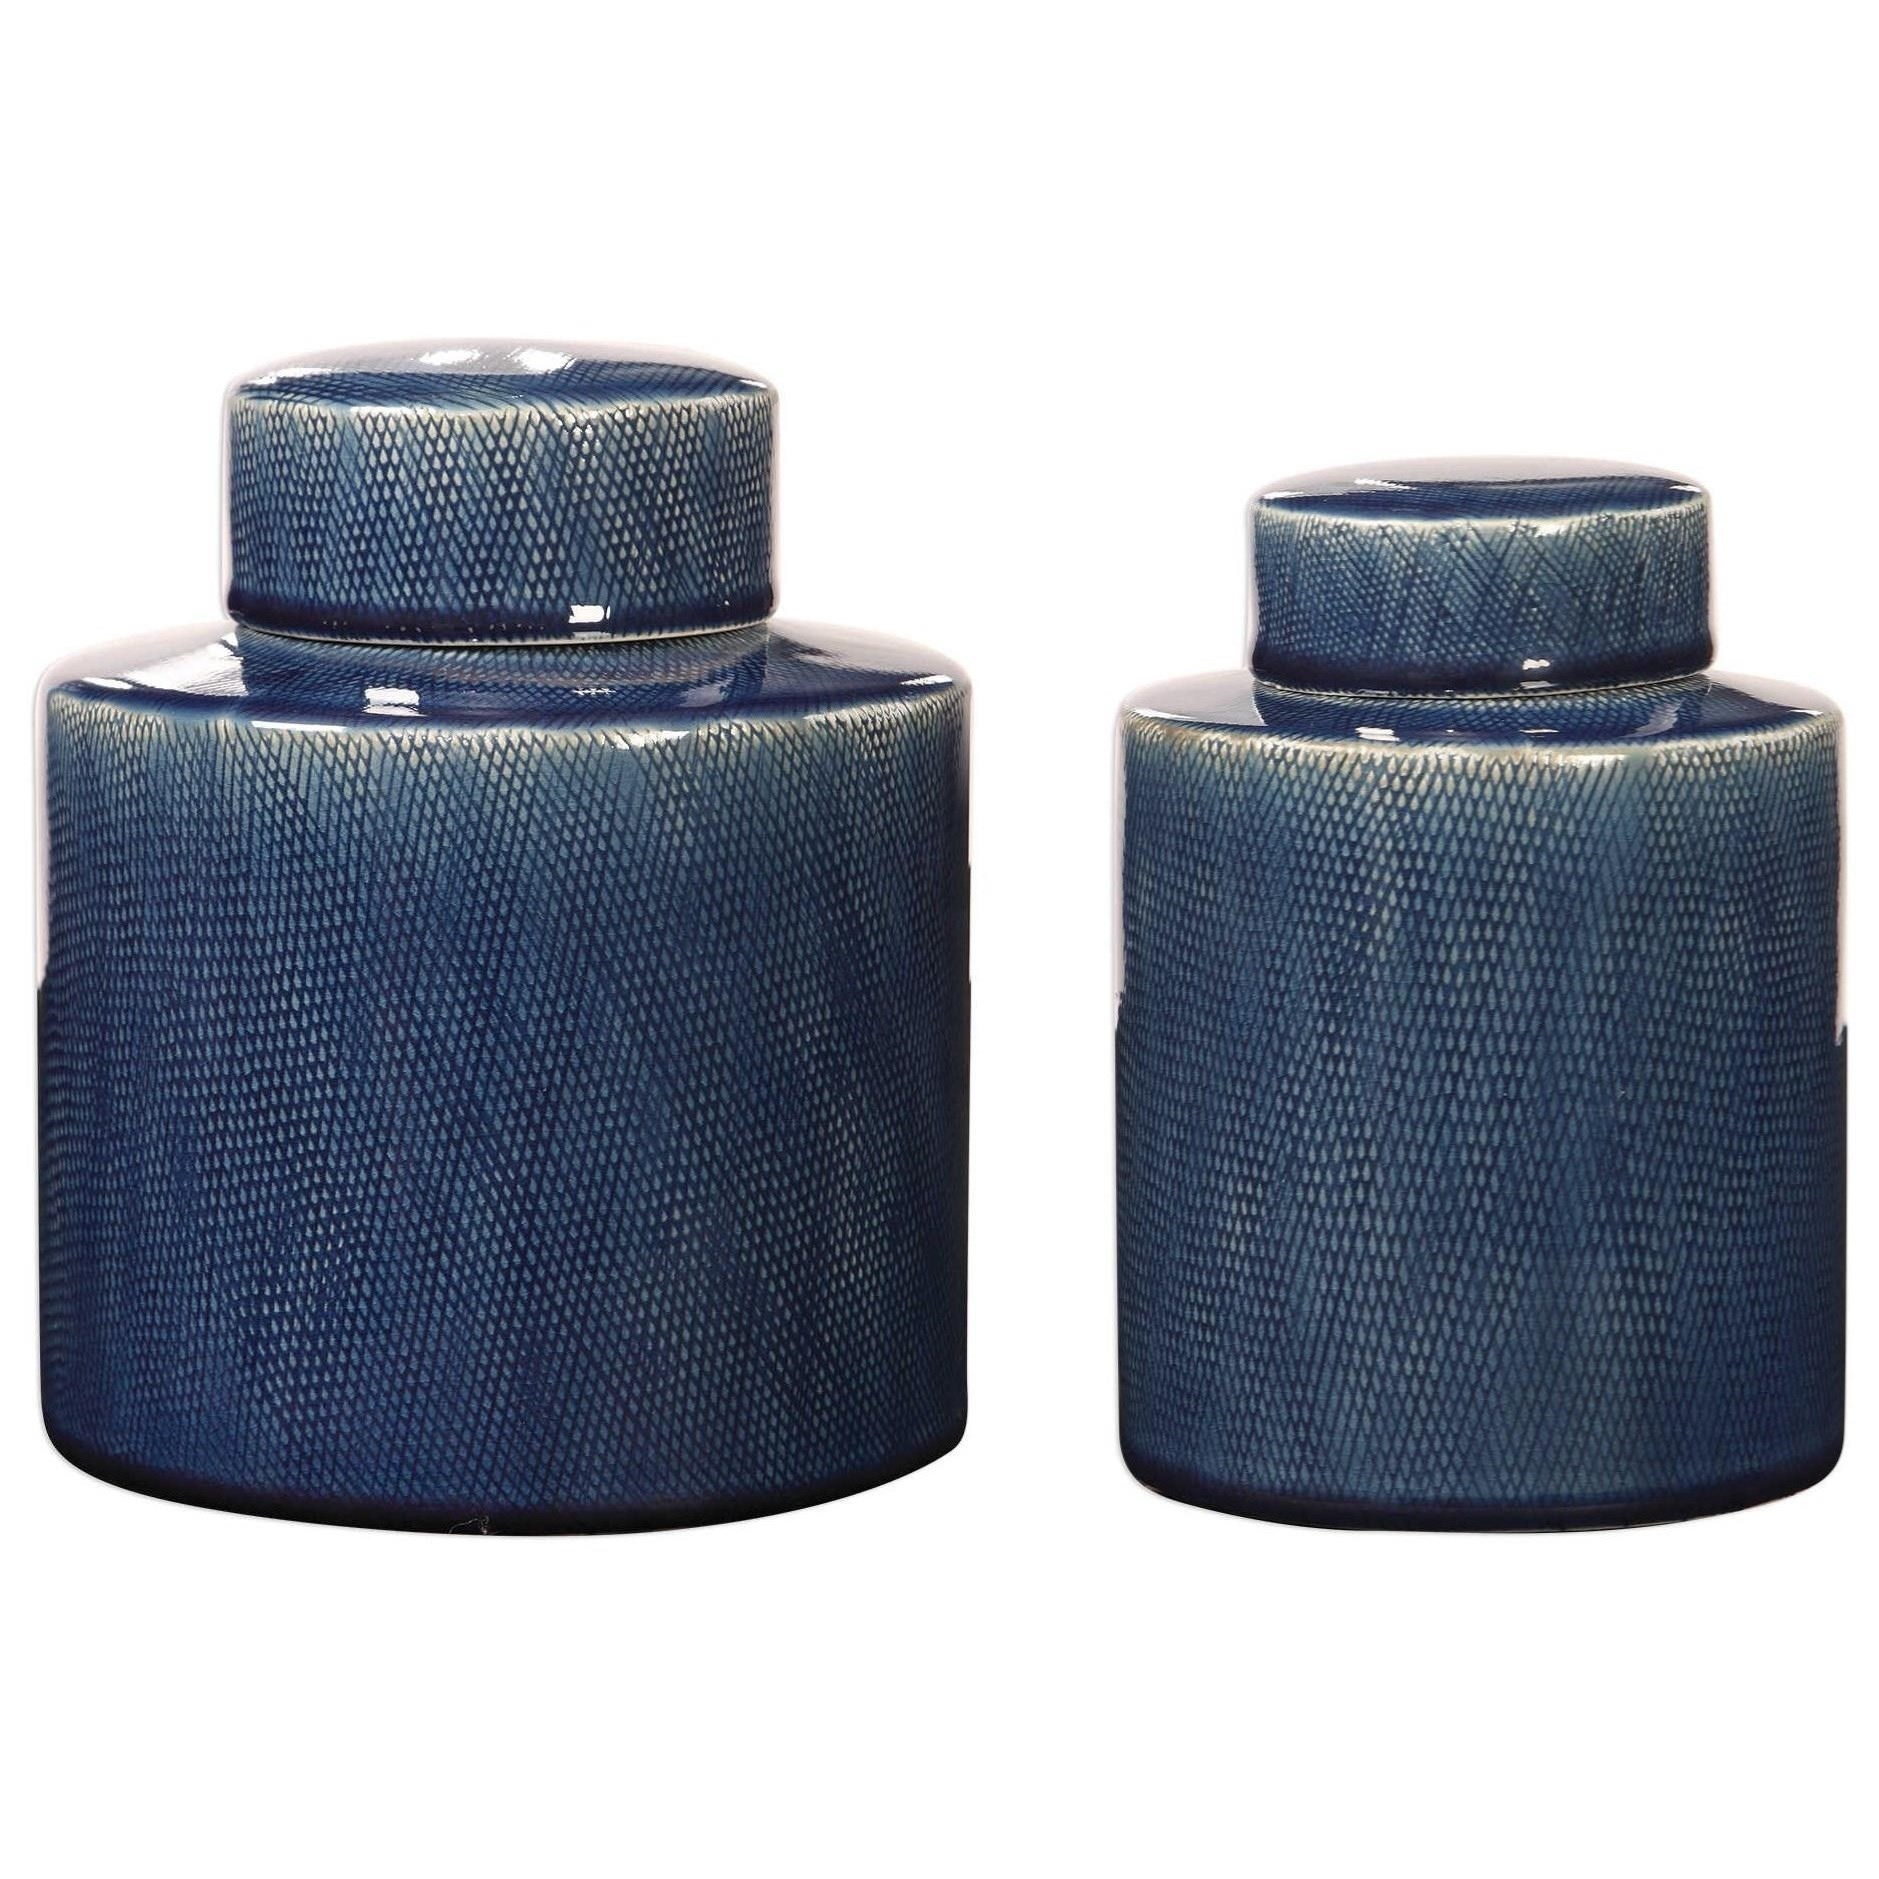 Accessories Saniya Blue Containers, S/2 by Uttermost at Mueller Furniture